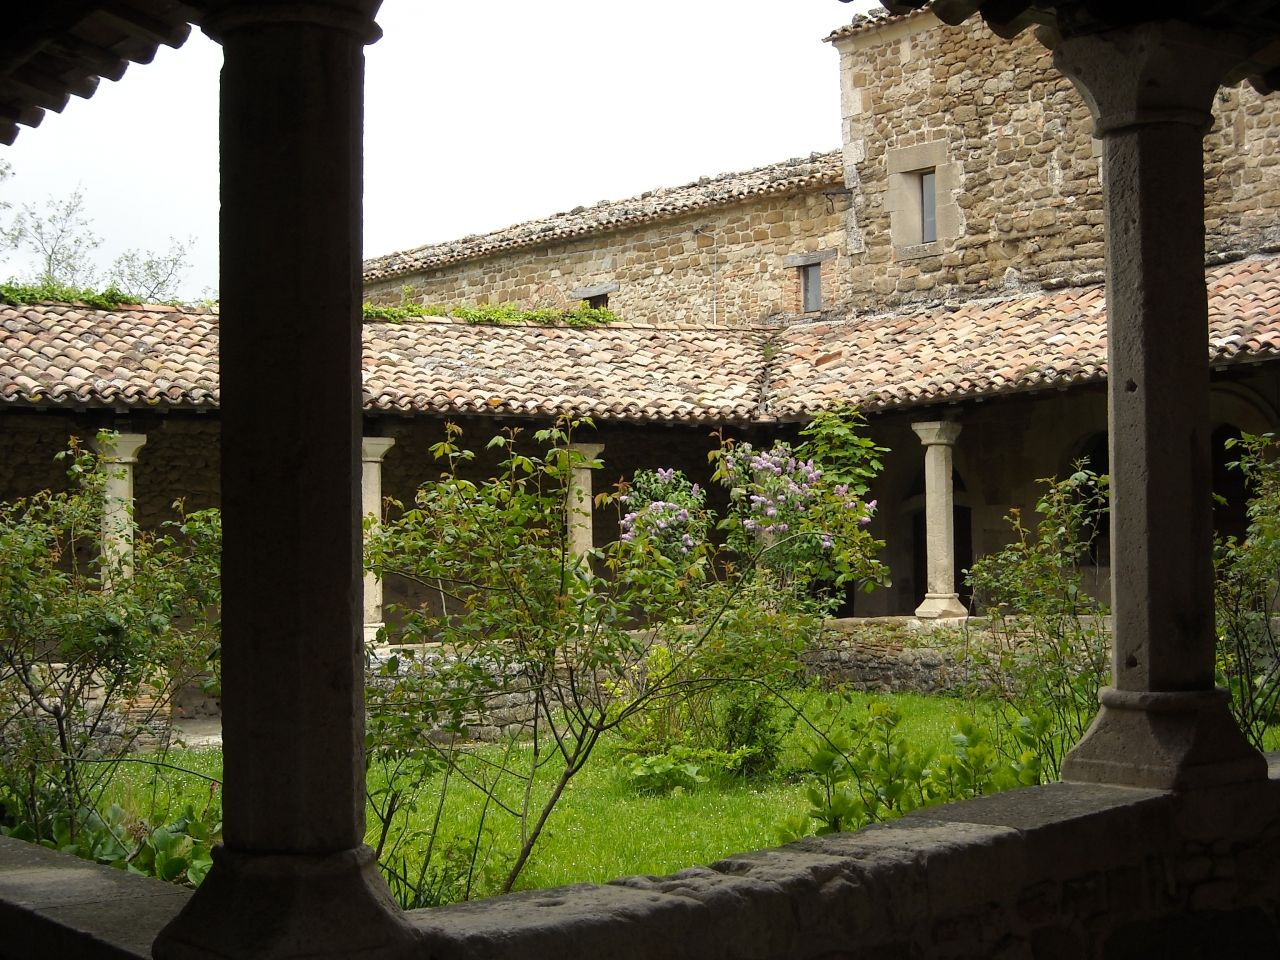 Monastery of Sant'Igne in San Leo  - collected by L for Italia! - www.linenlavenderlife.com - https://www.pinterest.com/linenlavender/italia/